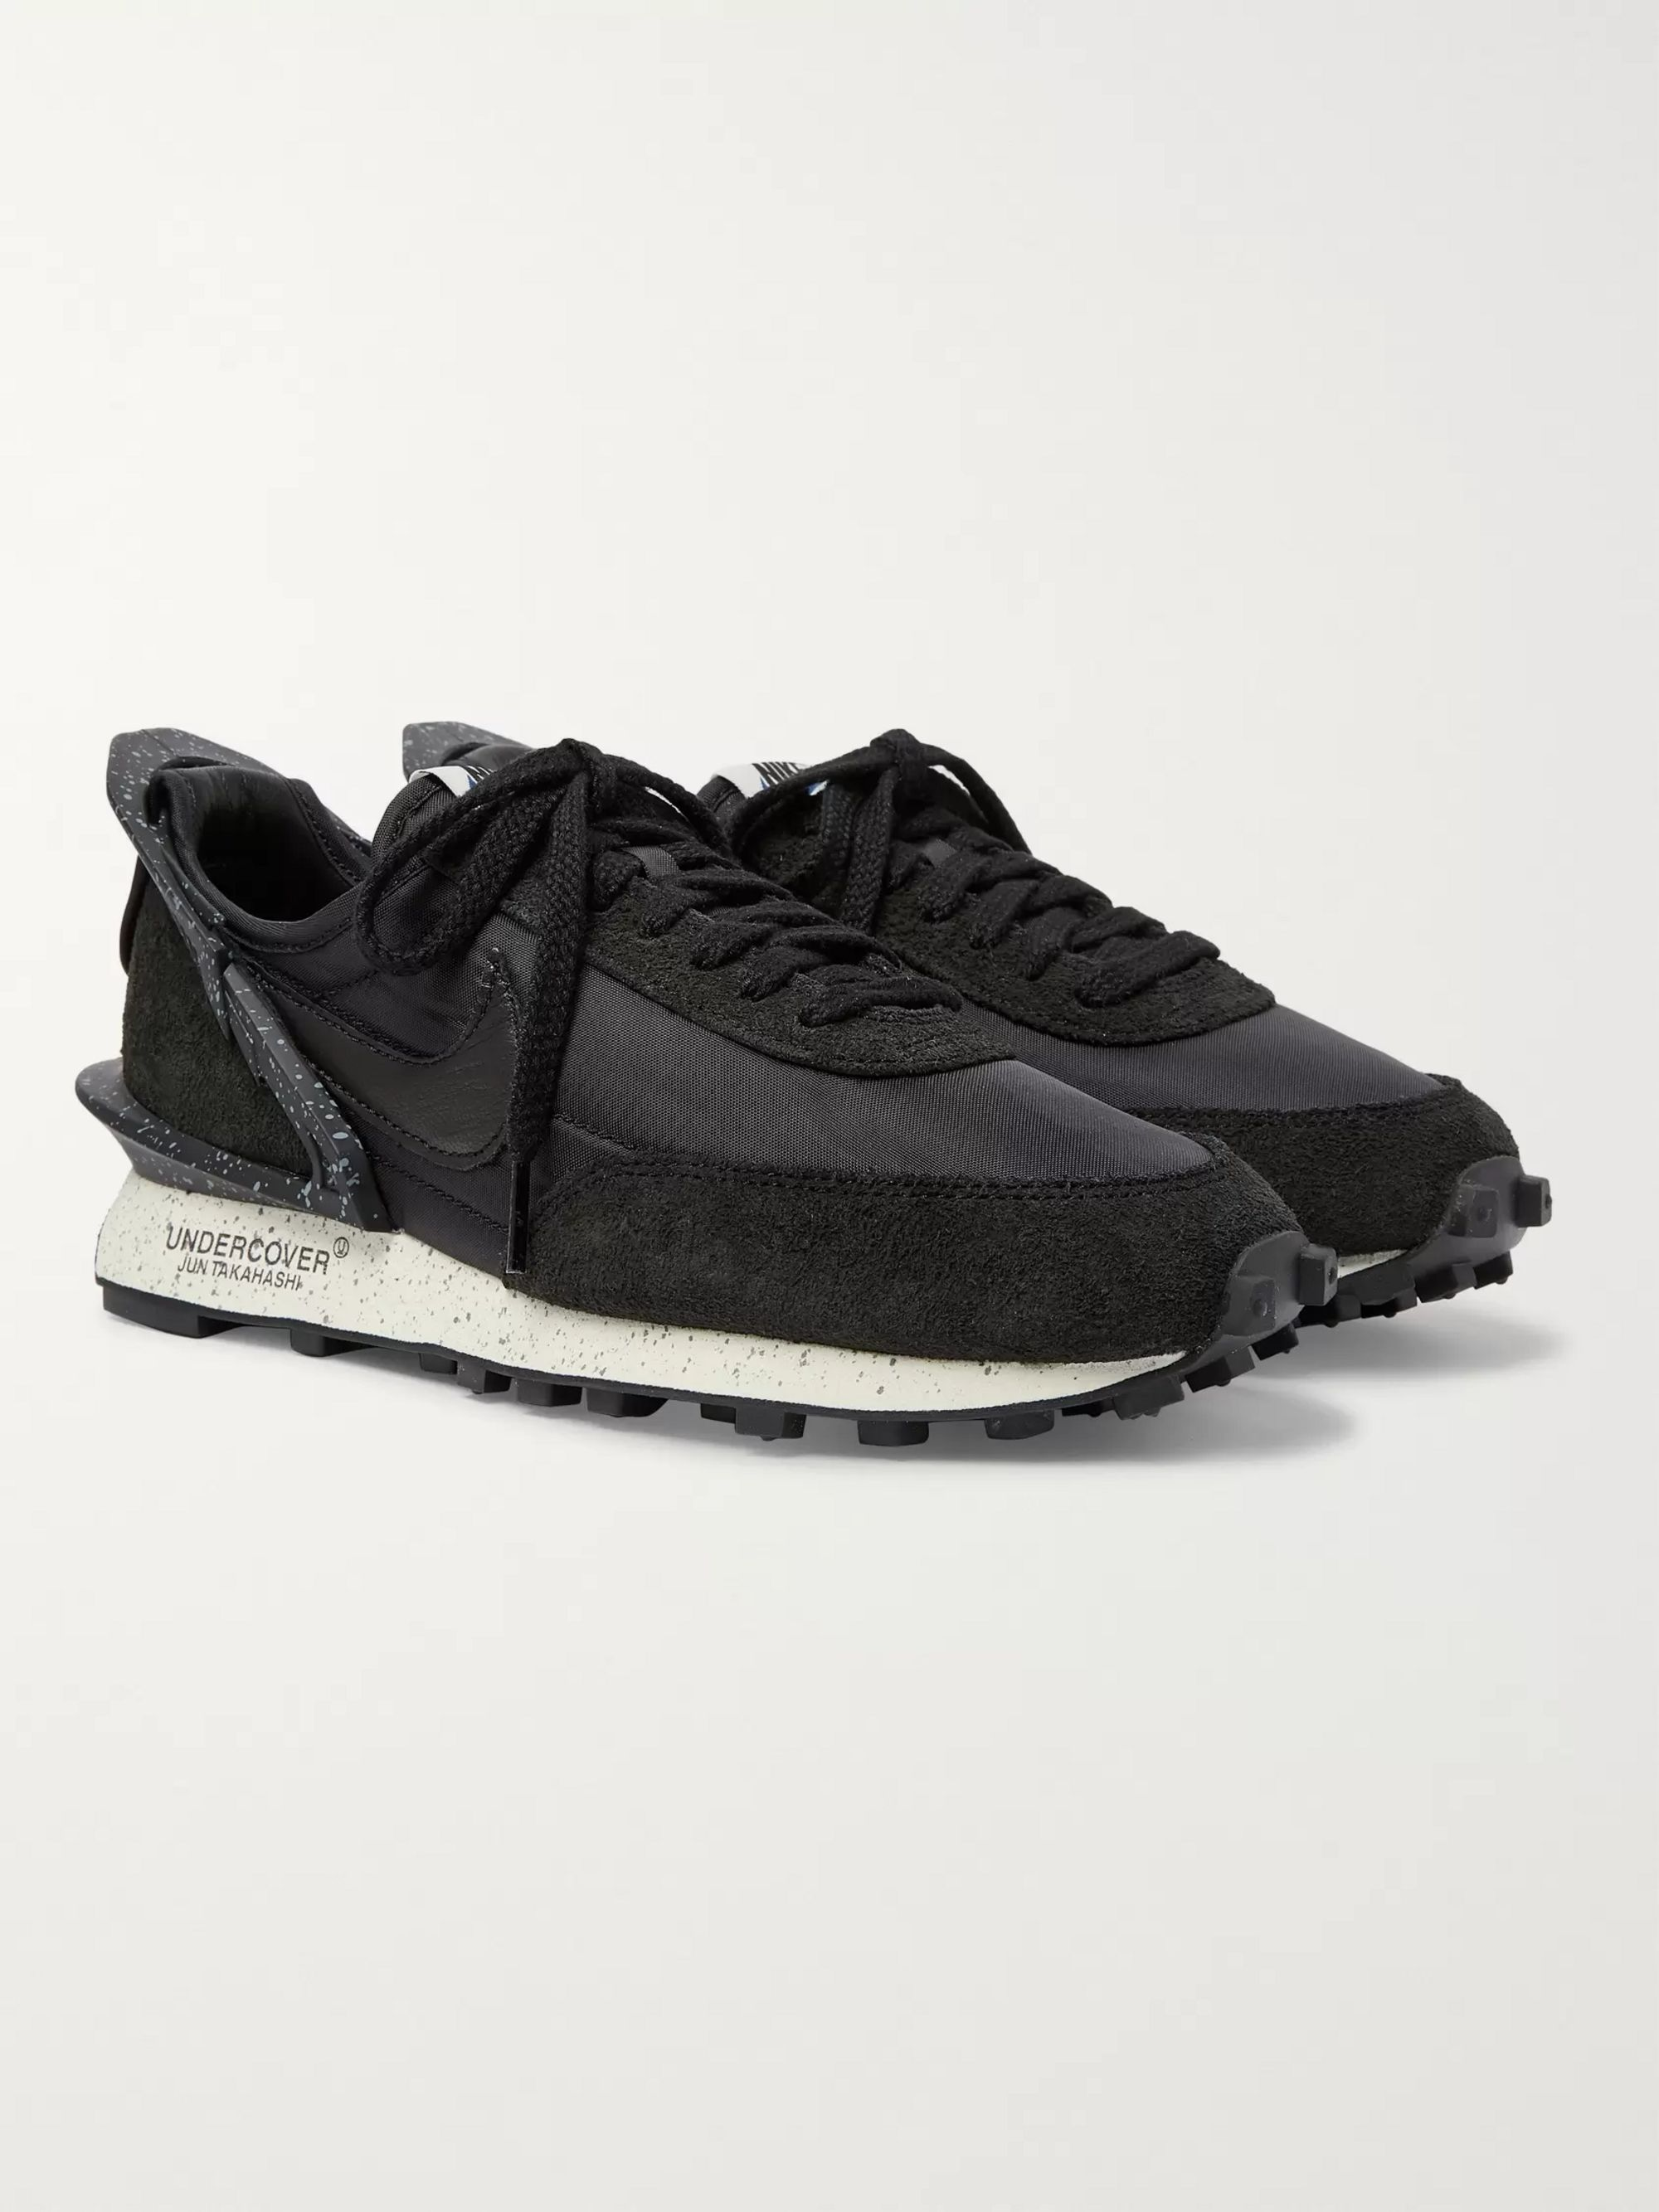 Nike + Undercover Daybreak Leather-Trimmed Nylon and Suede Sneakers